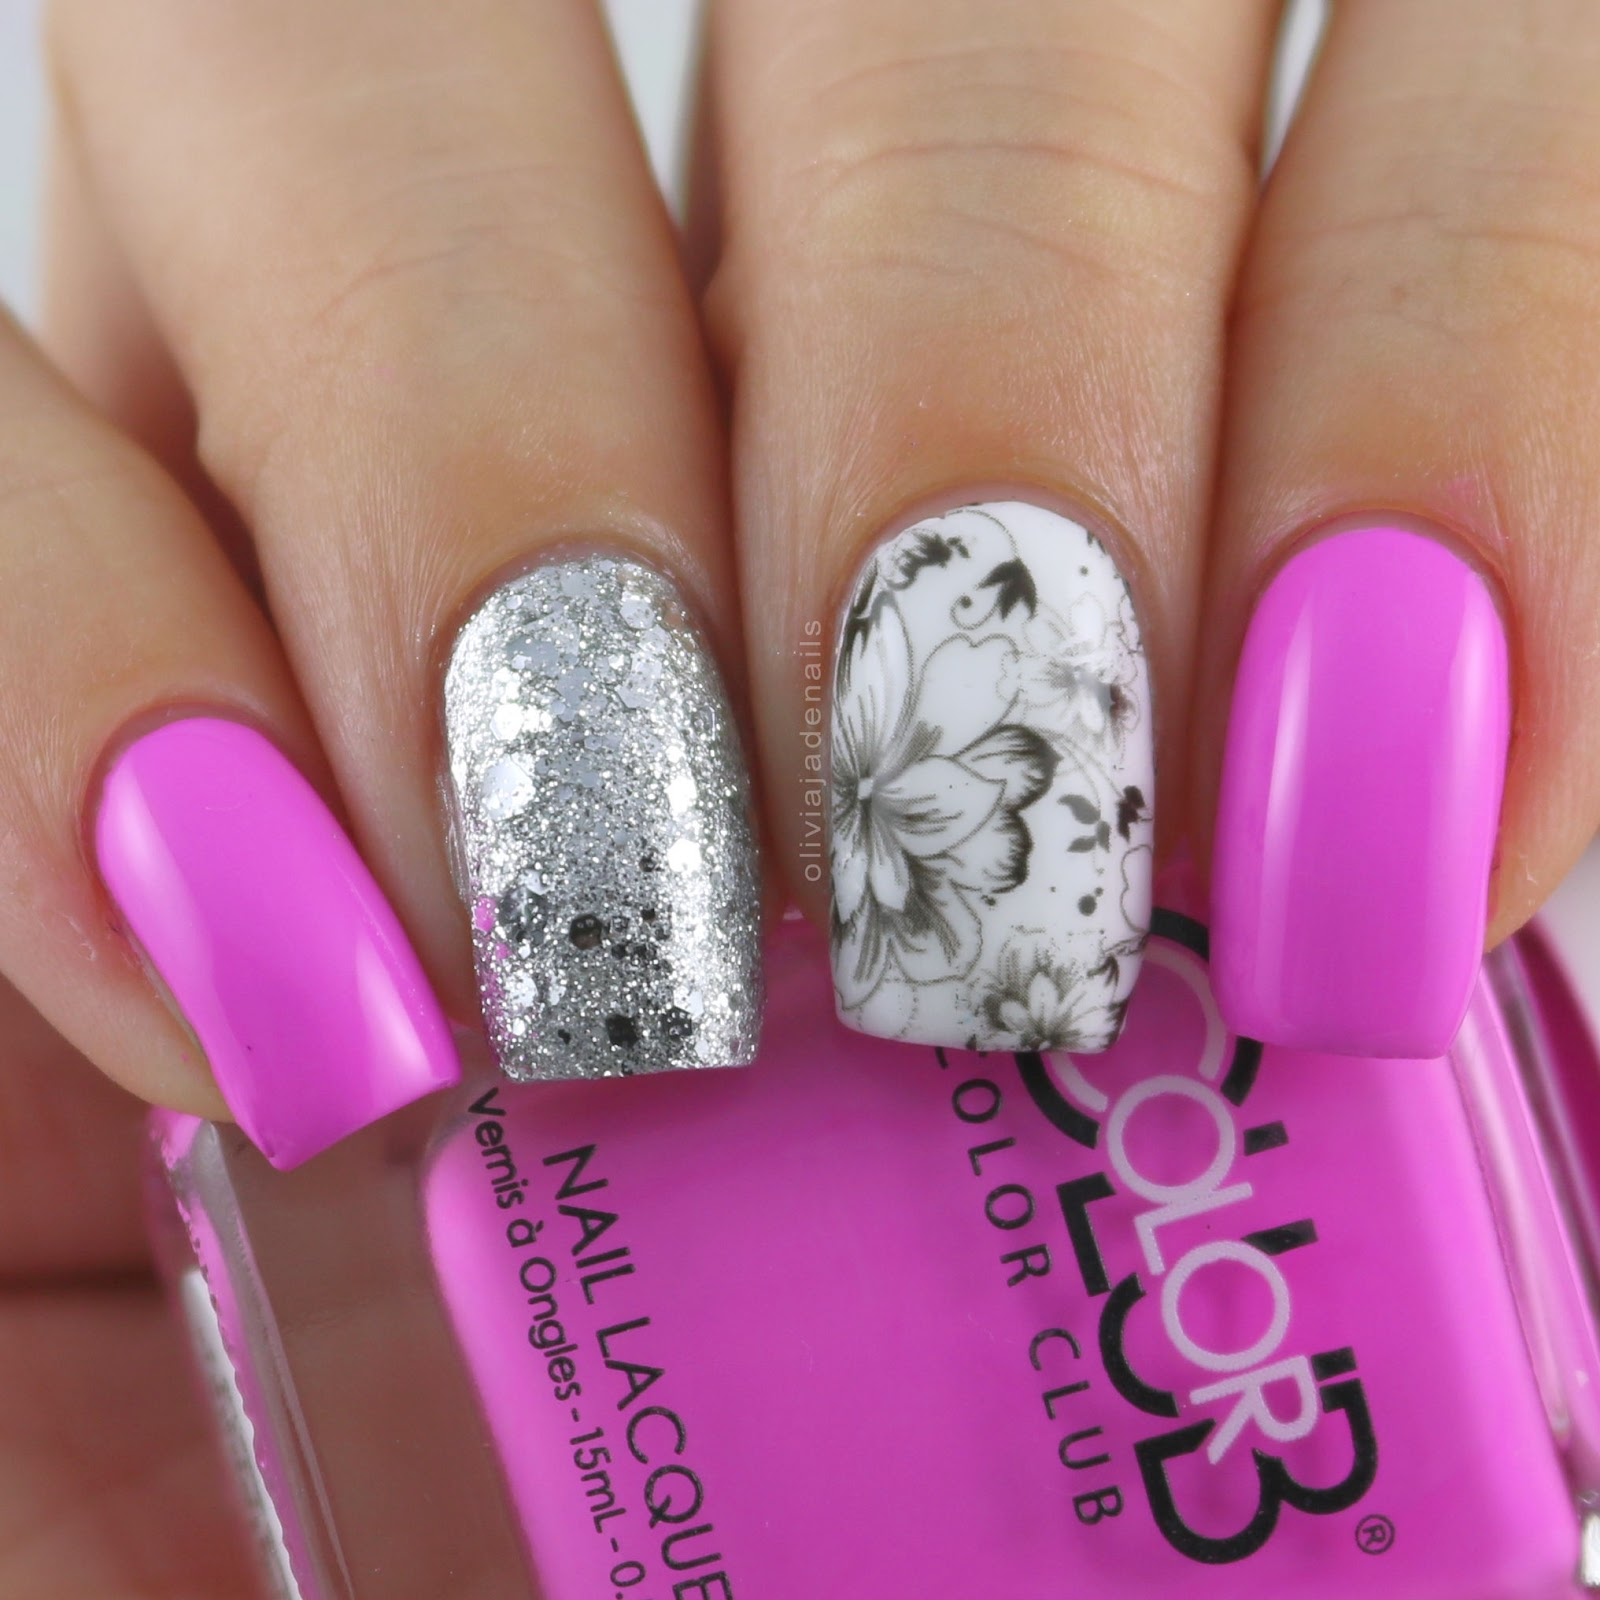 Coupons for jade nails - What does one coupon per person per order mean